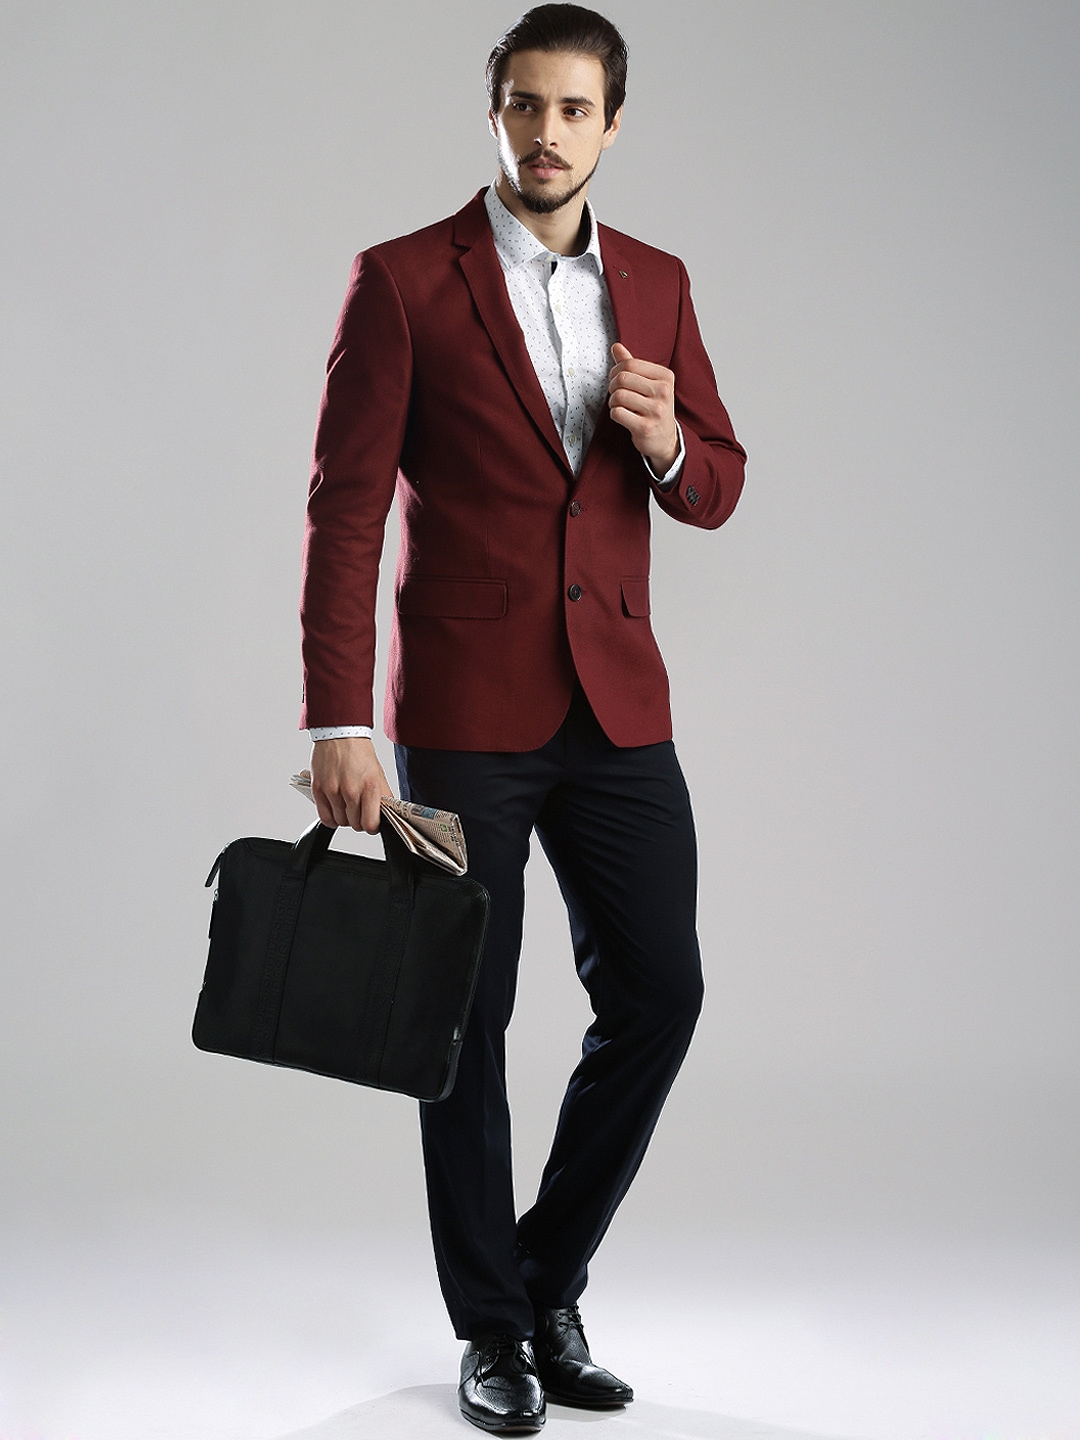 Burgundy Blazers: Burgundy Blazer is a main part of the male wardrobe. Armed with a good looking blazer, a pair of slacks in a coordinating color, a dress shirt and tie, and you can go just about anywhere.